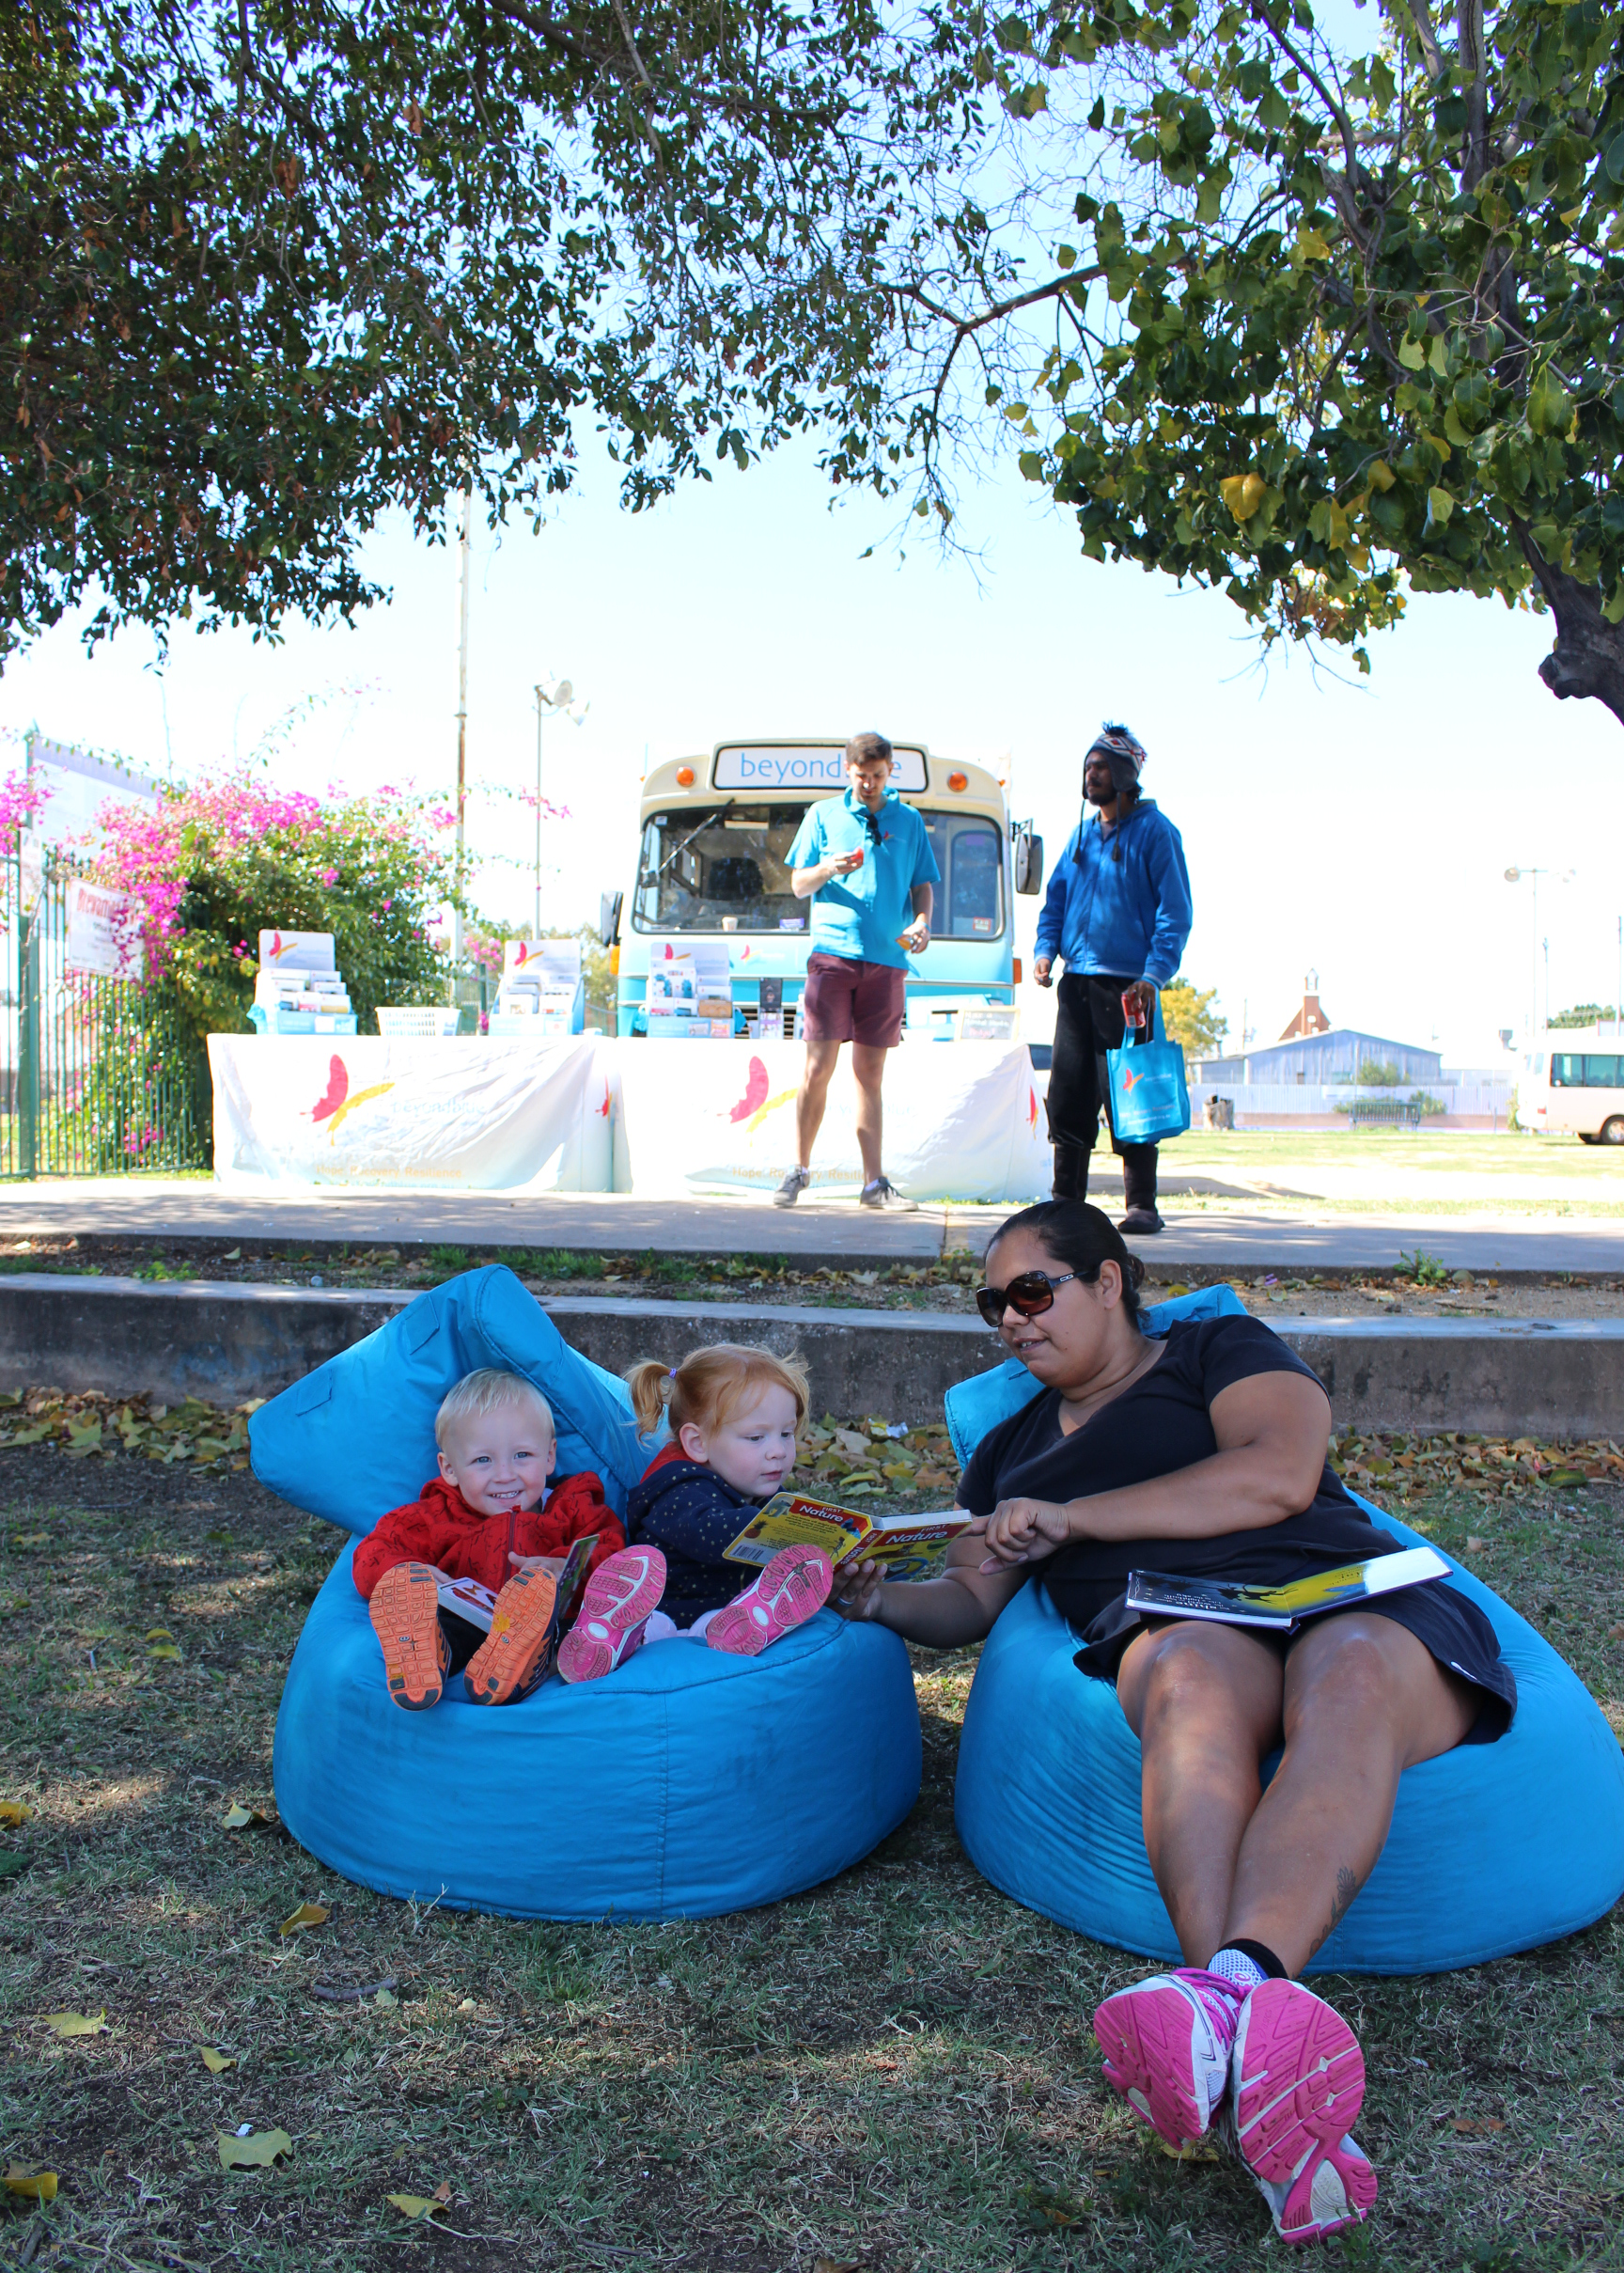 Brewarrina's youngest residents got involved when the big blue bus came to town.